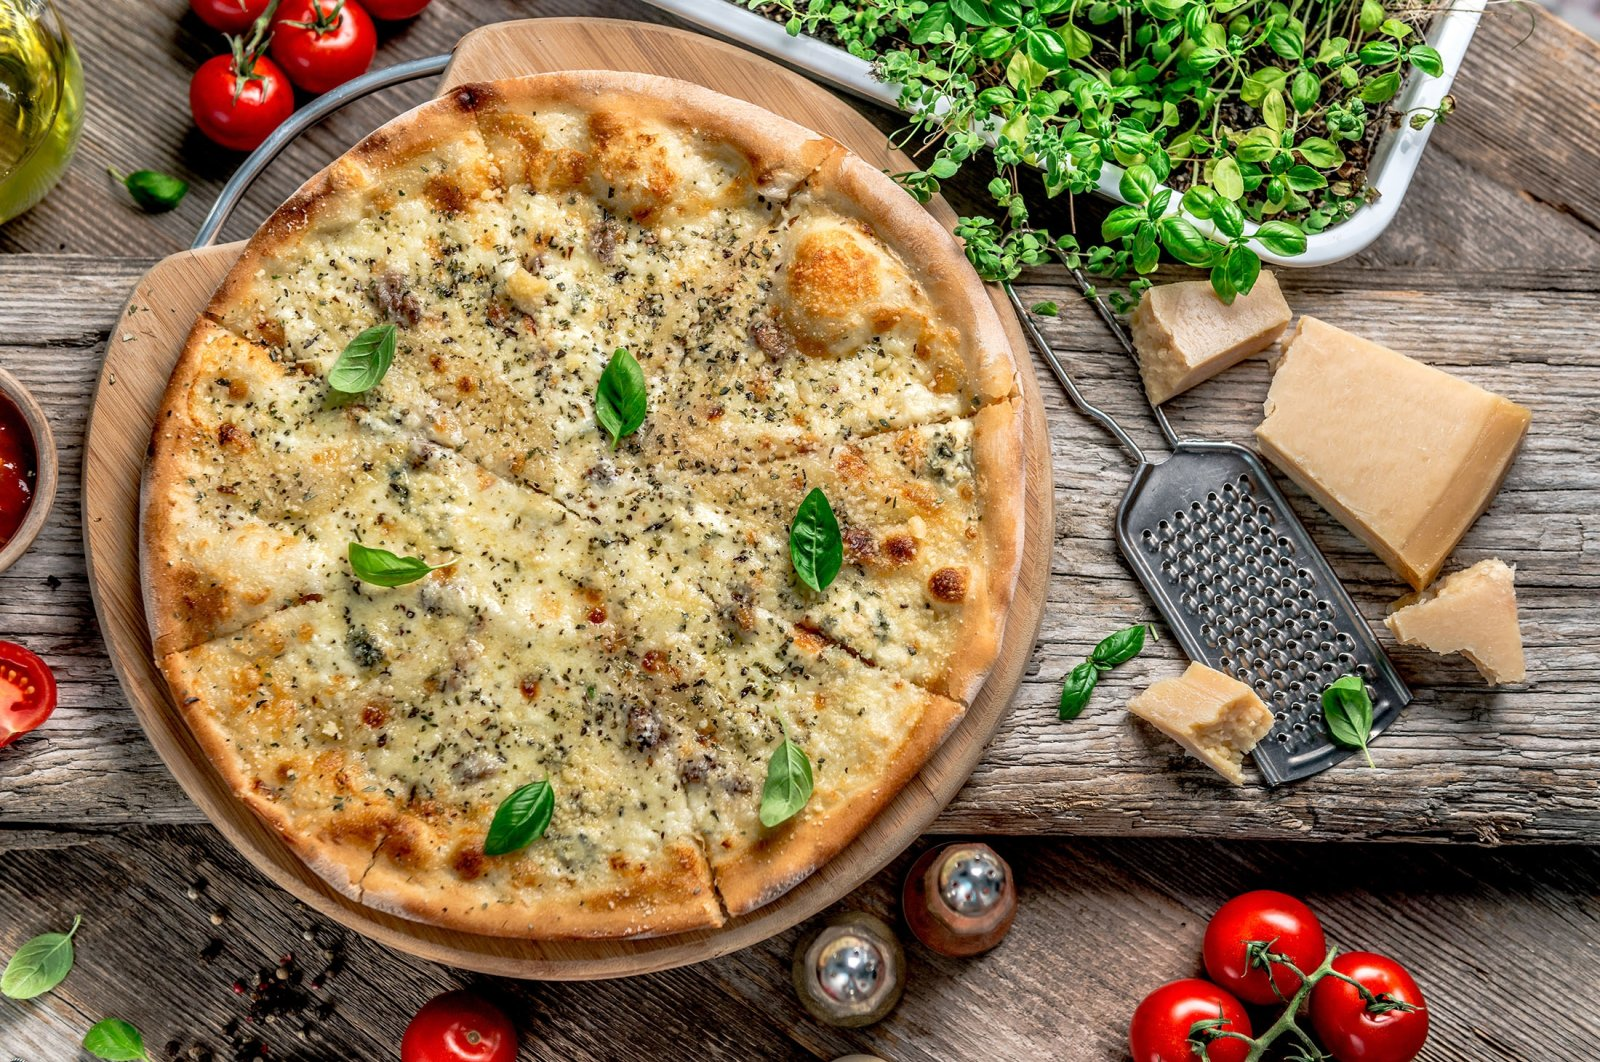 Pizza quattro formaggi, or four cheese pizza, is an iconic item on many menus. (Shutterstock Photo)